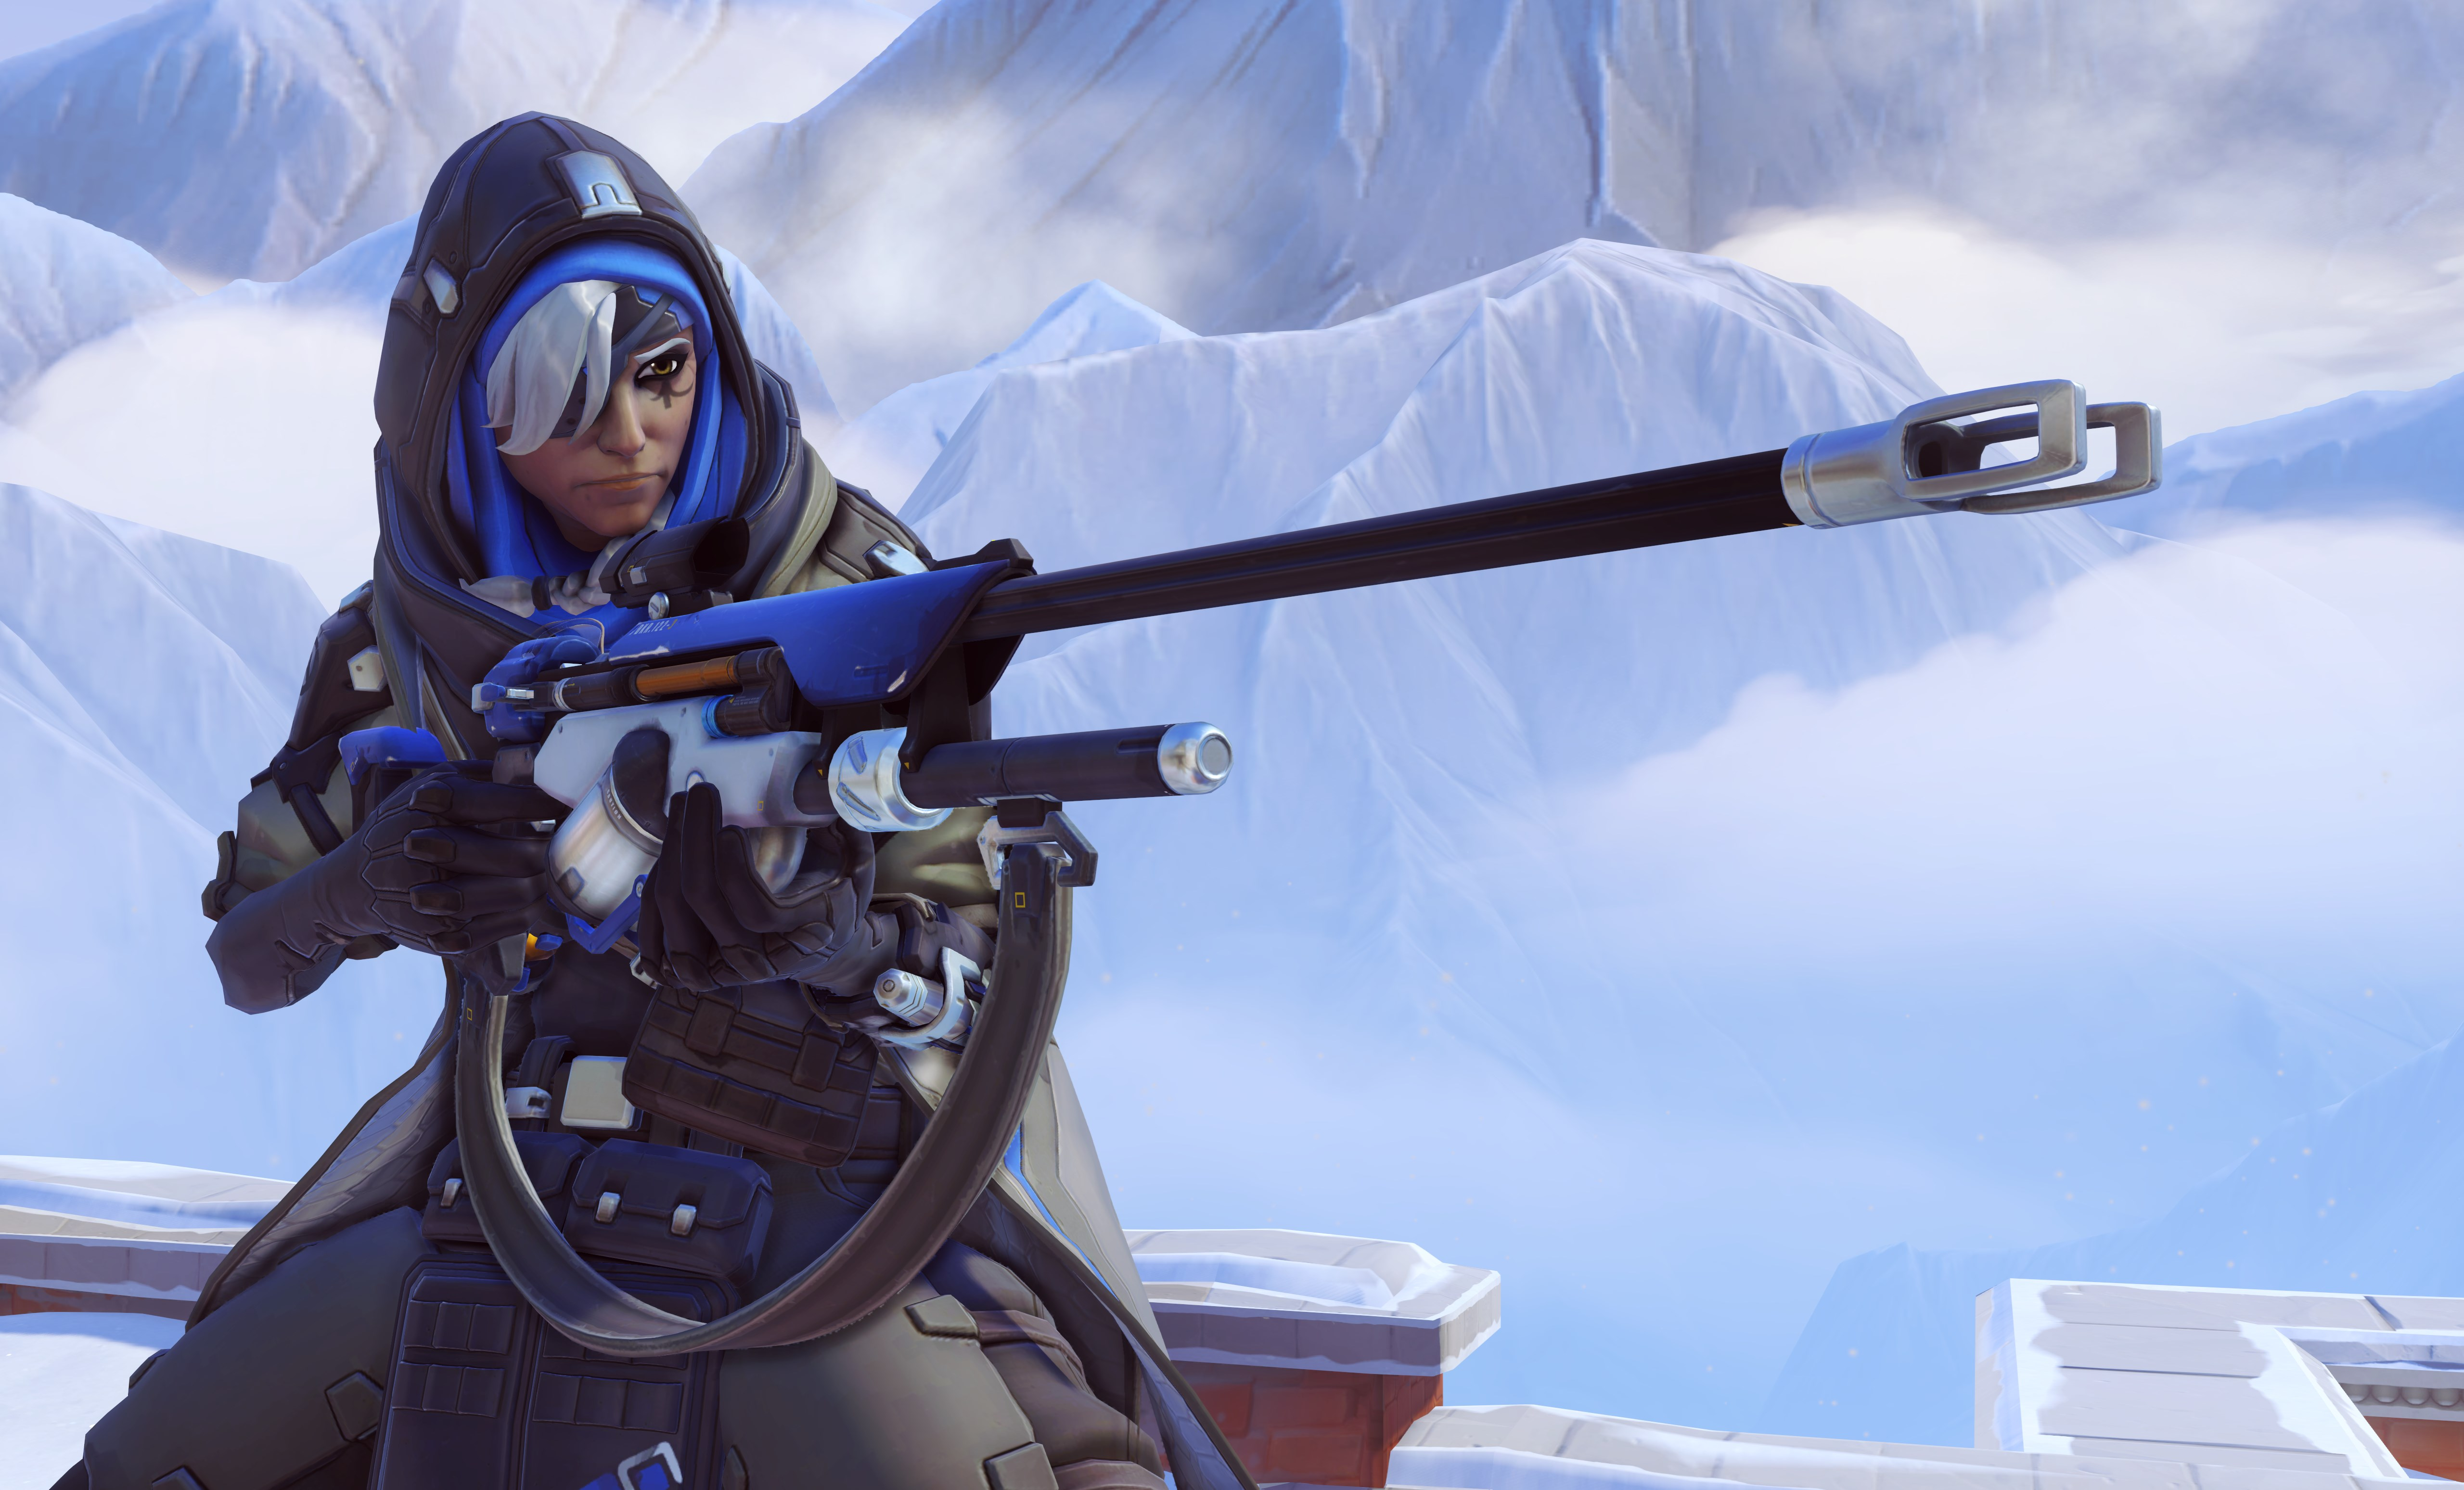 53 Ana Overwatch Hd Wallpapers Background Images Wallpaper Abyss